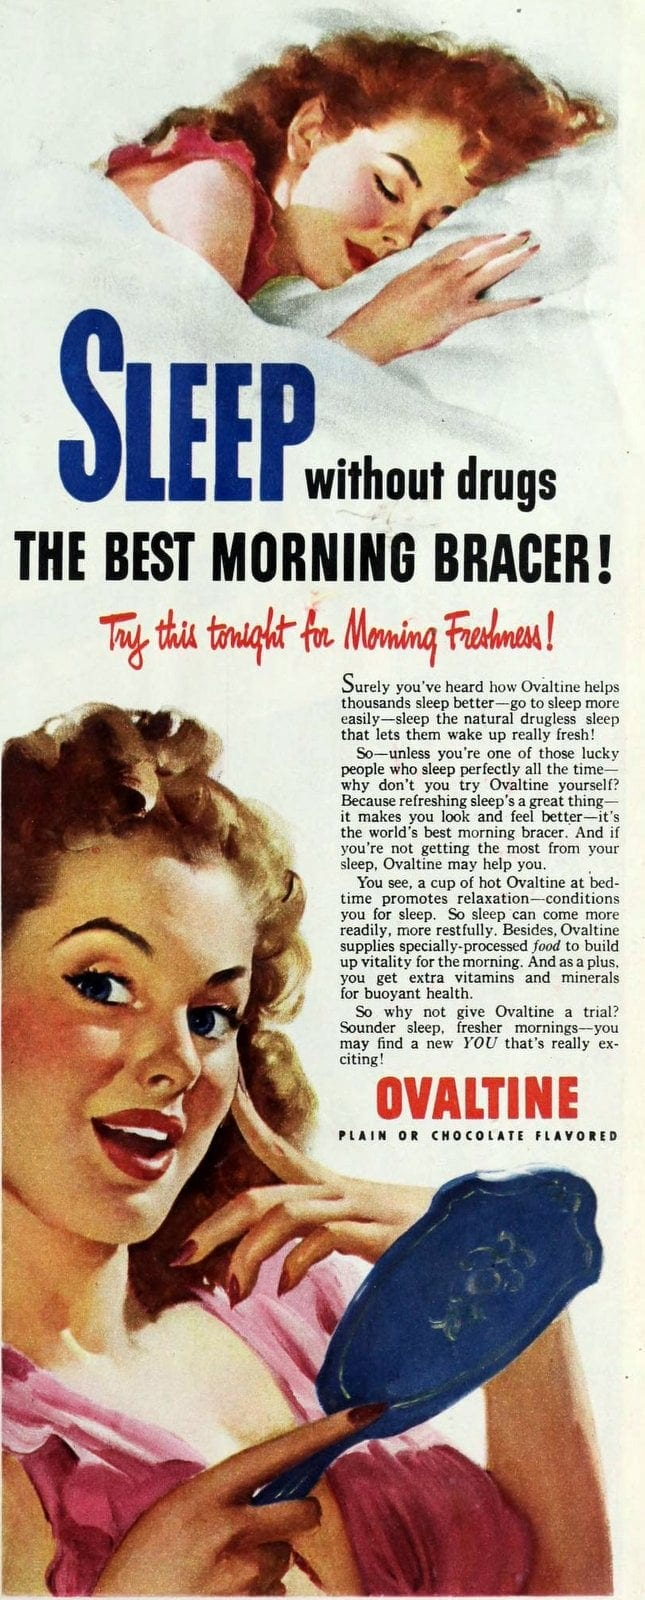 Sleep without drugs thanks to Ovaltine (1940s)